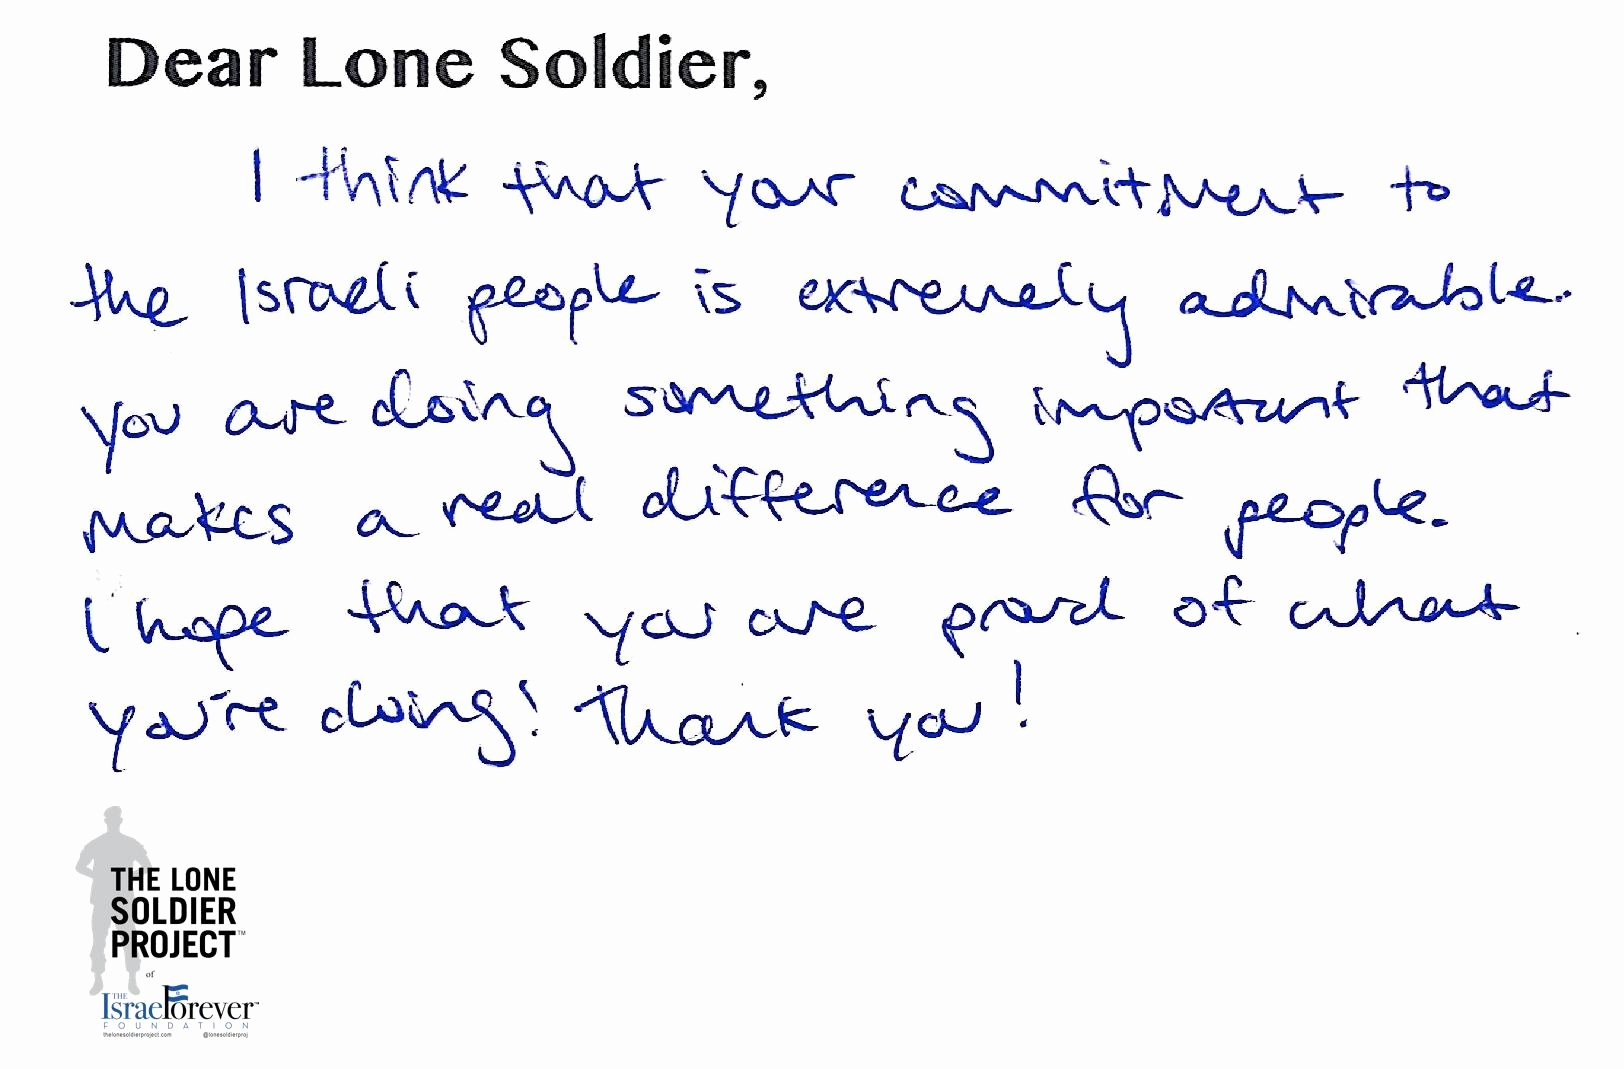 Thank You Letter to soldiers New News the israel forever Foundation